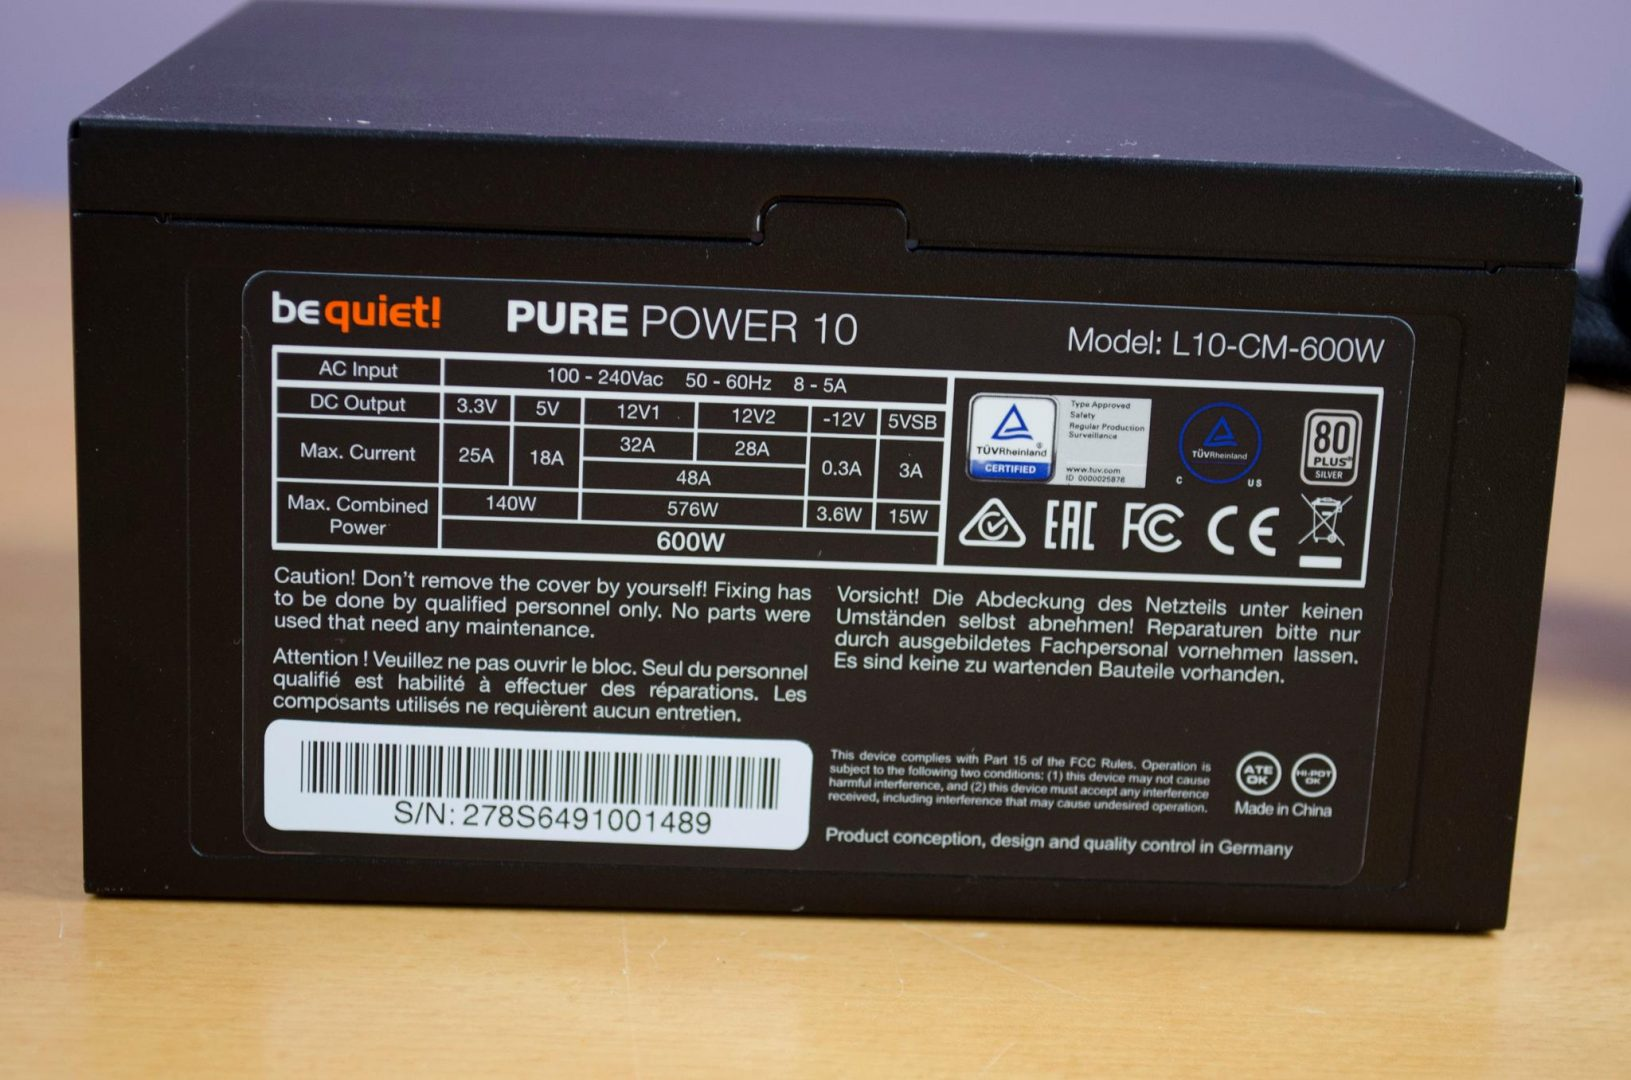 be quiet pure power 10 600w psu_7